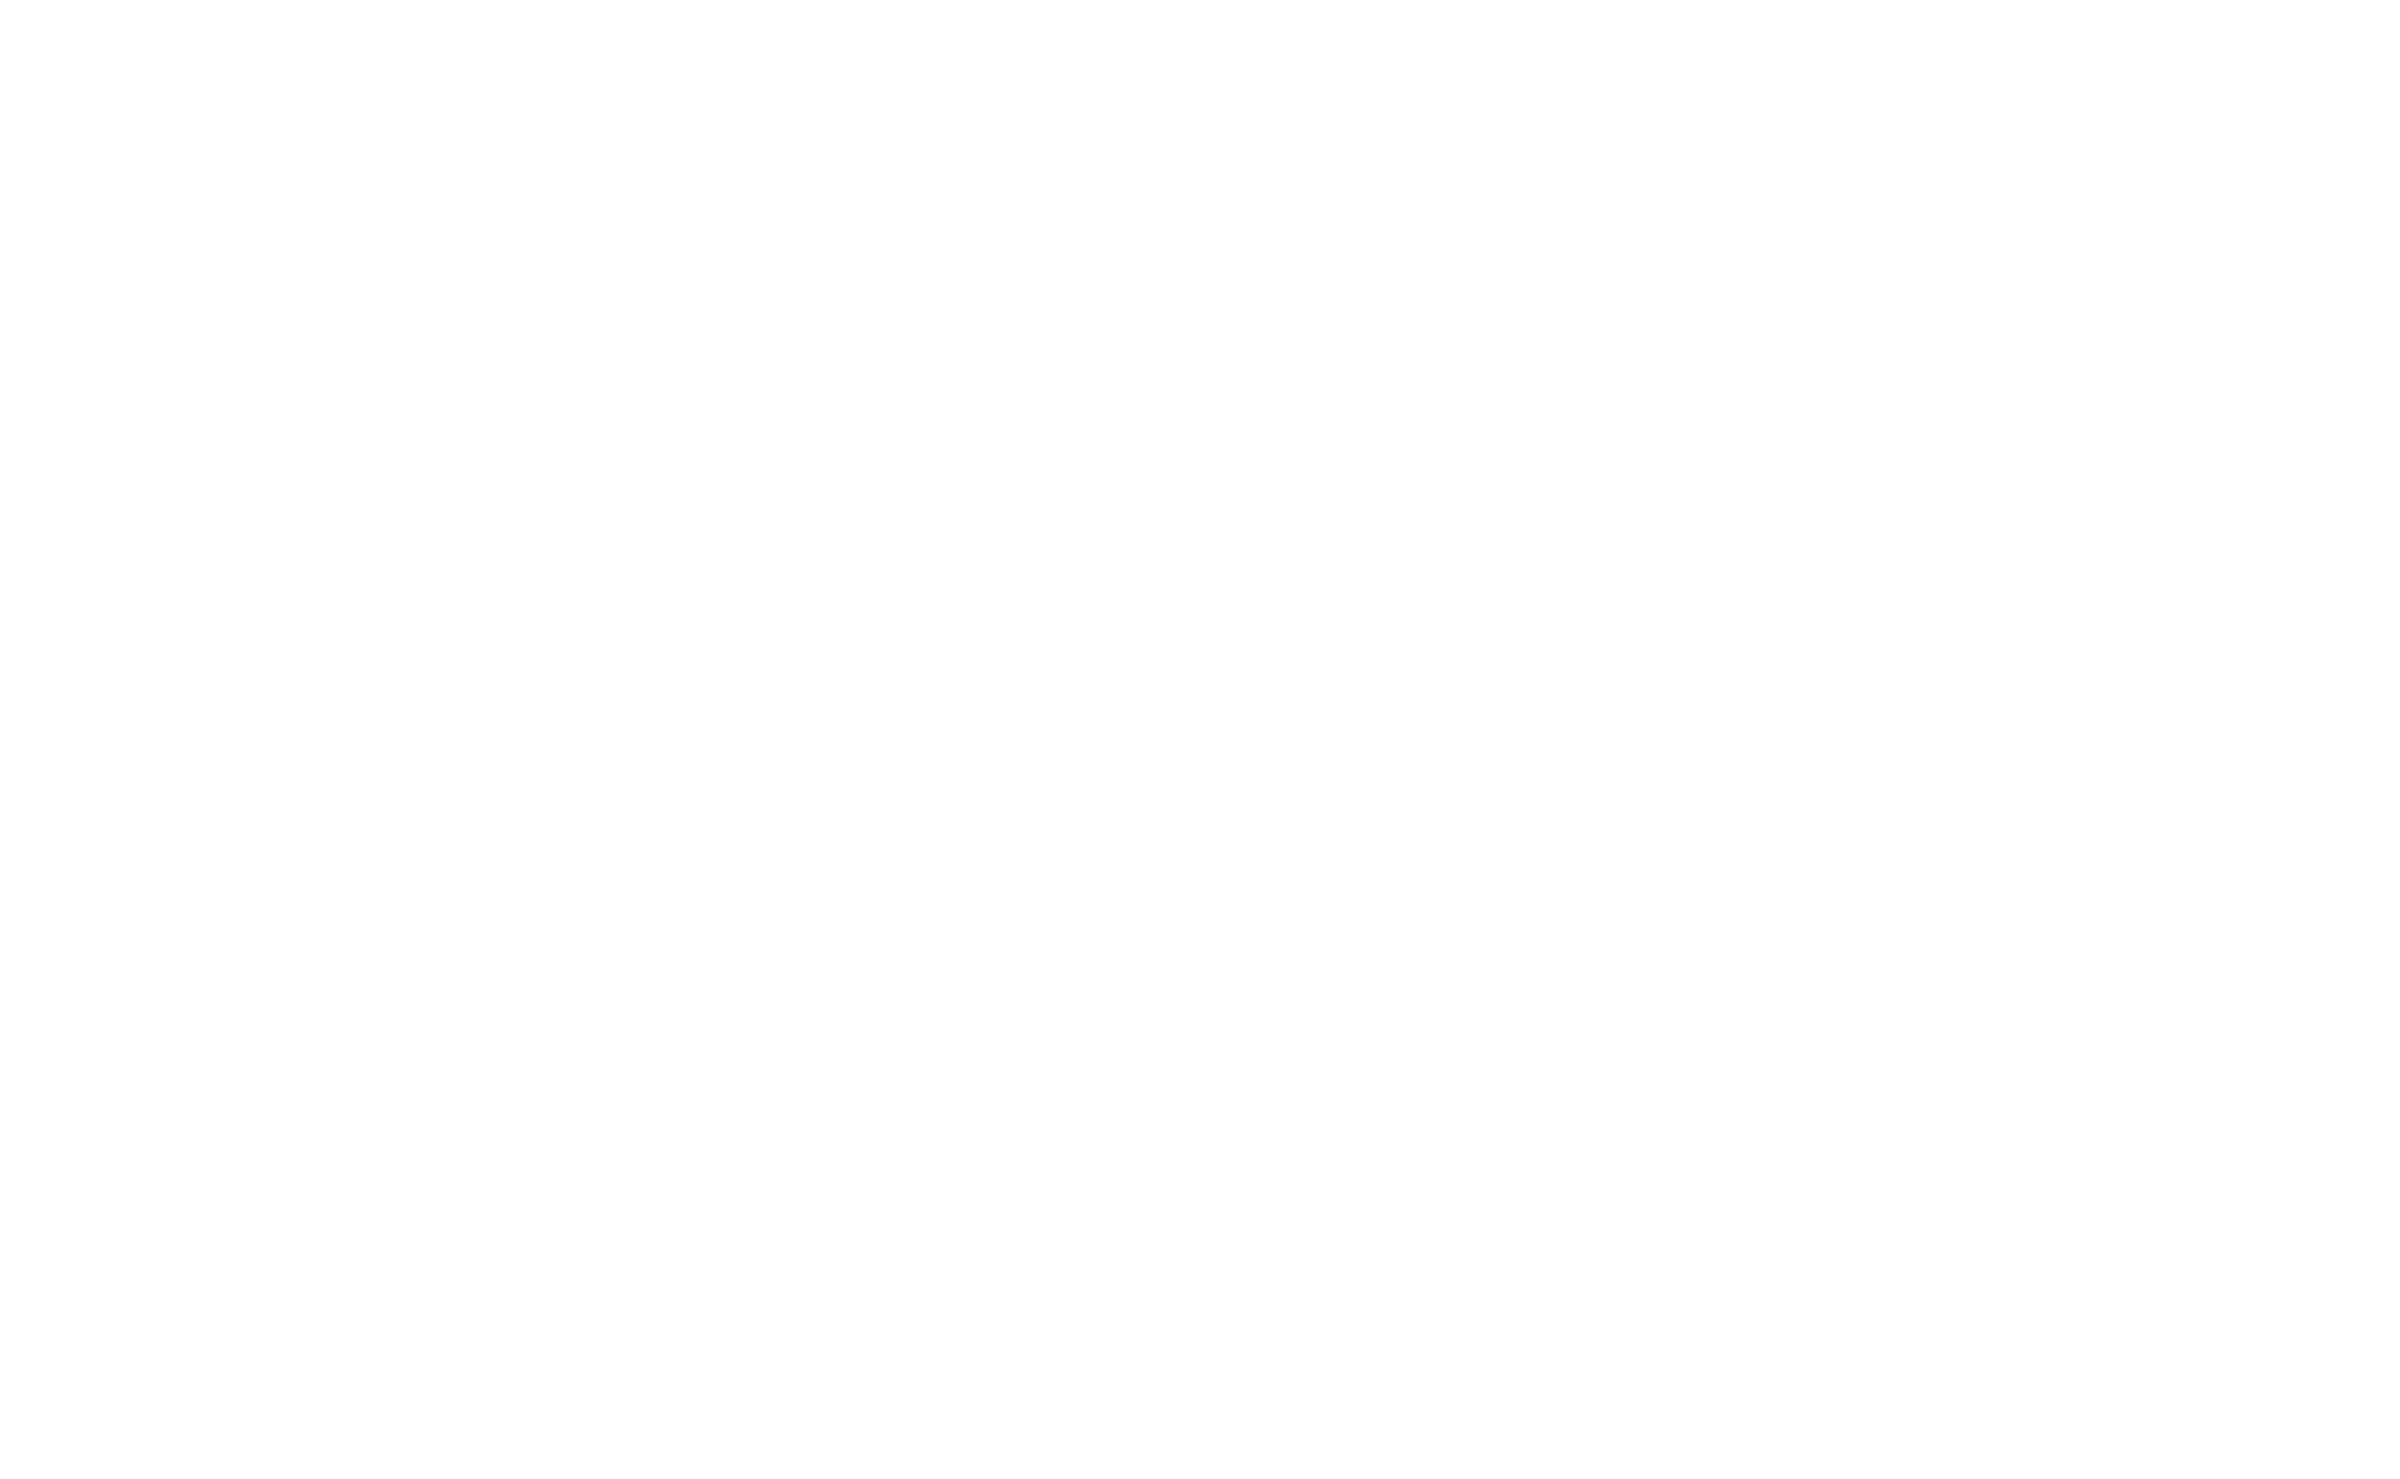 Healthcare communications for pharmaceutical company Pfizer